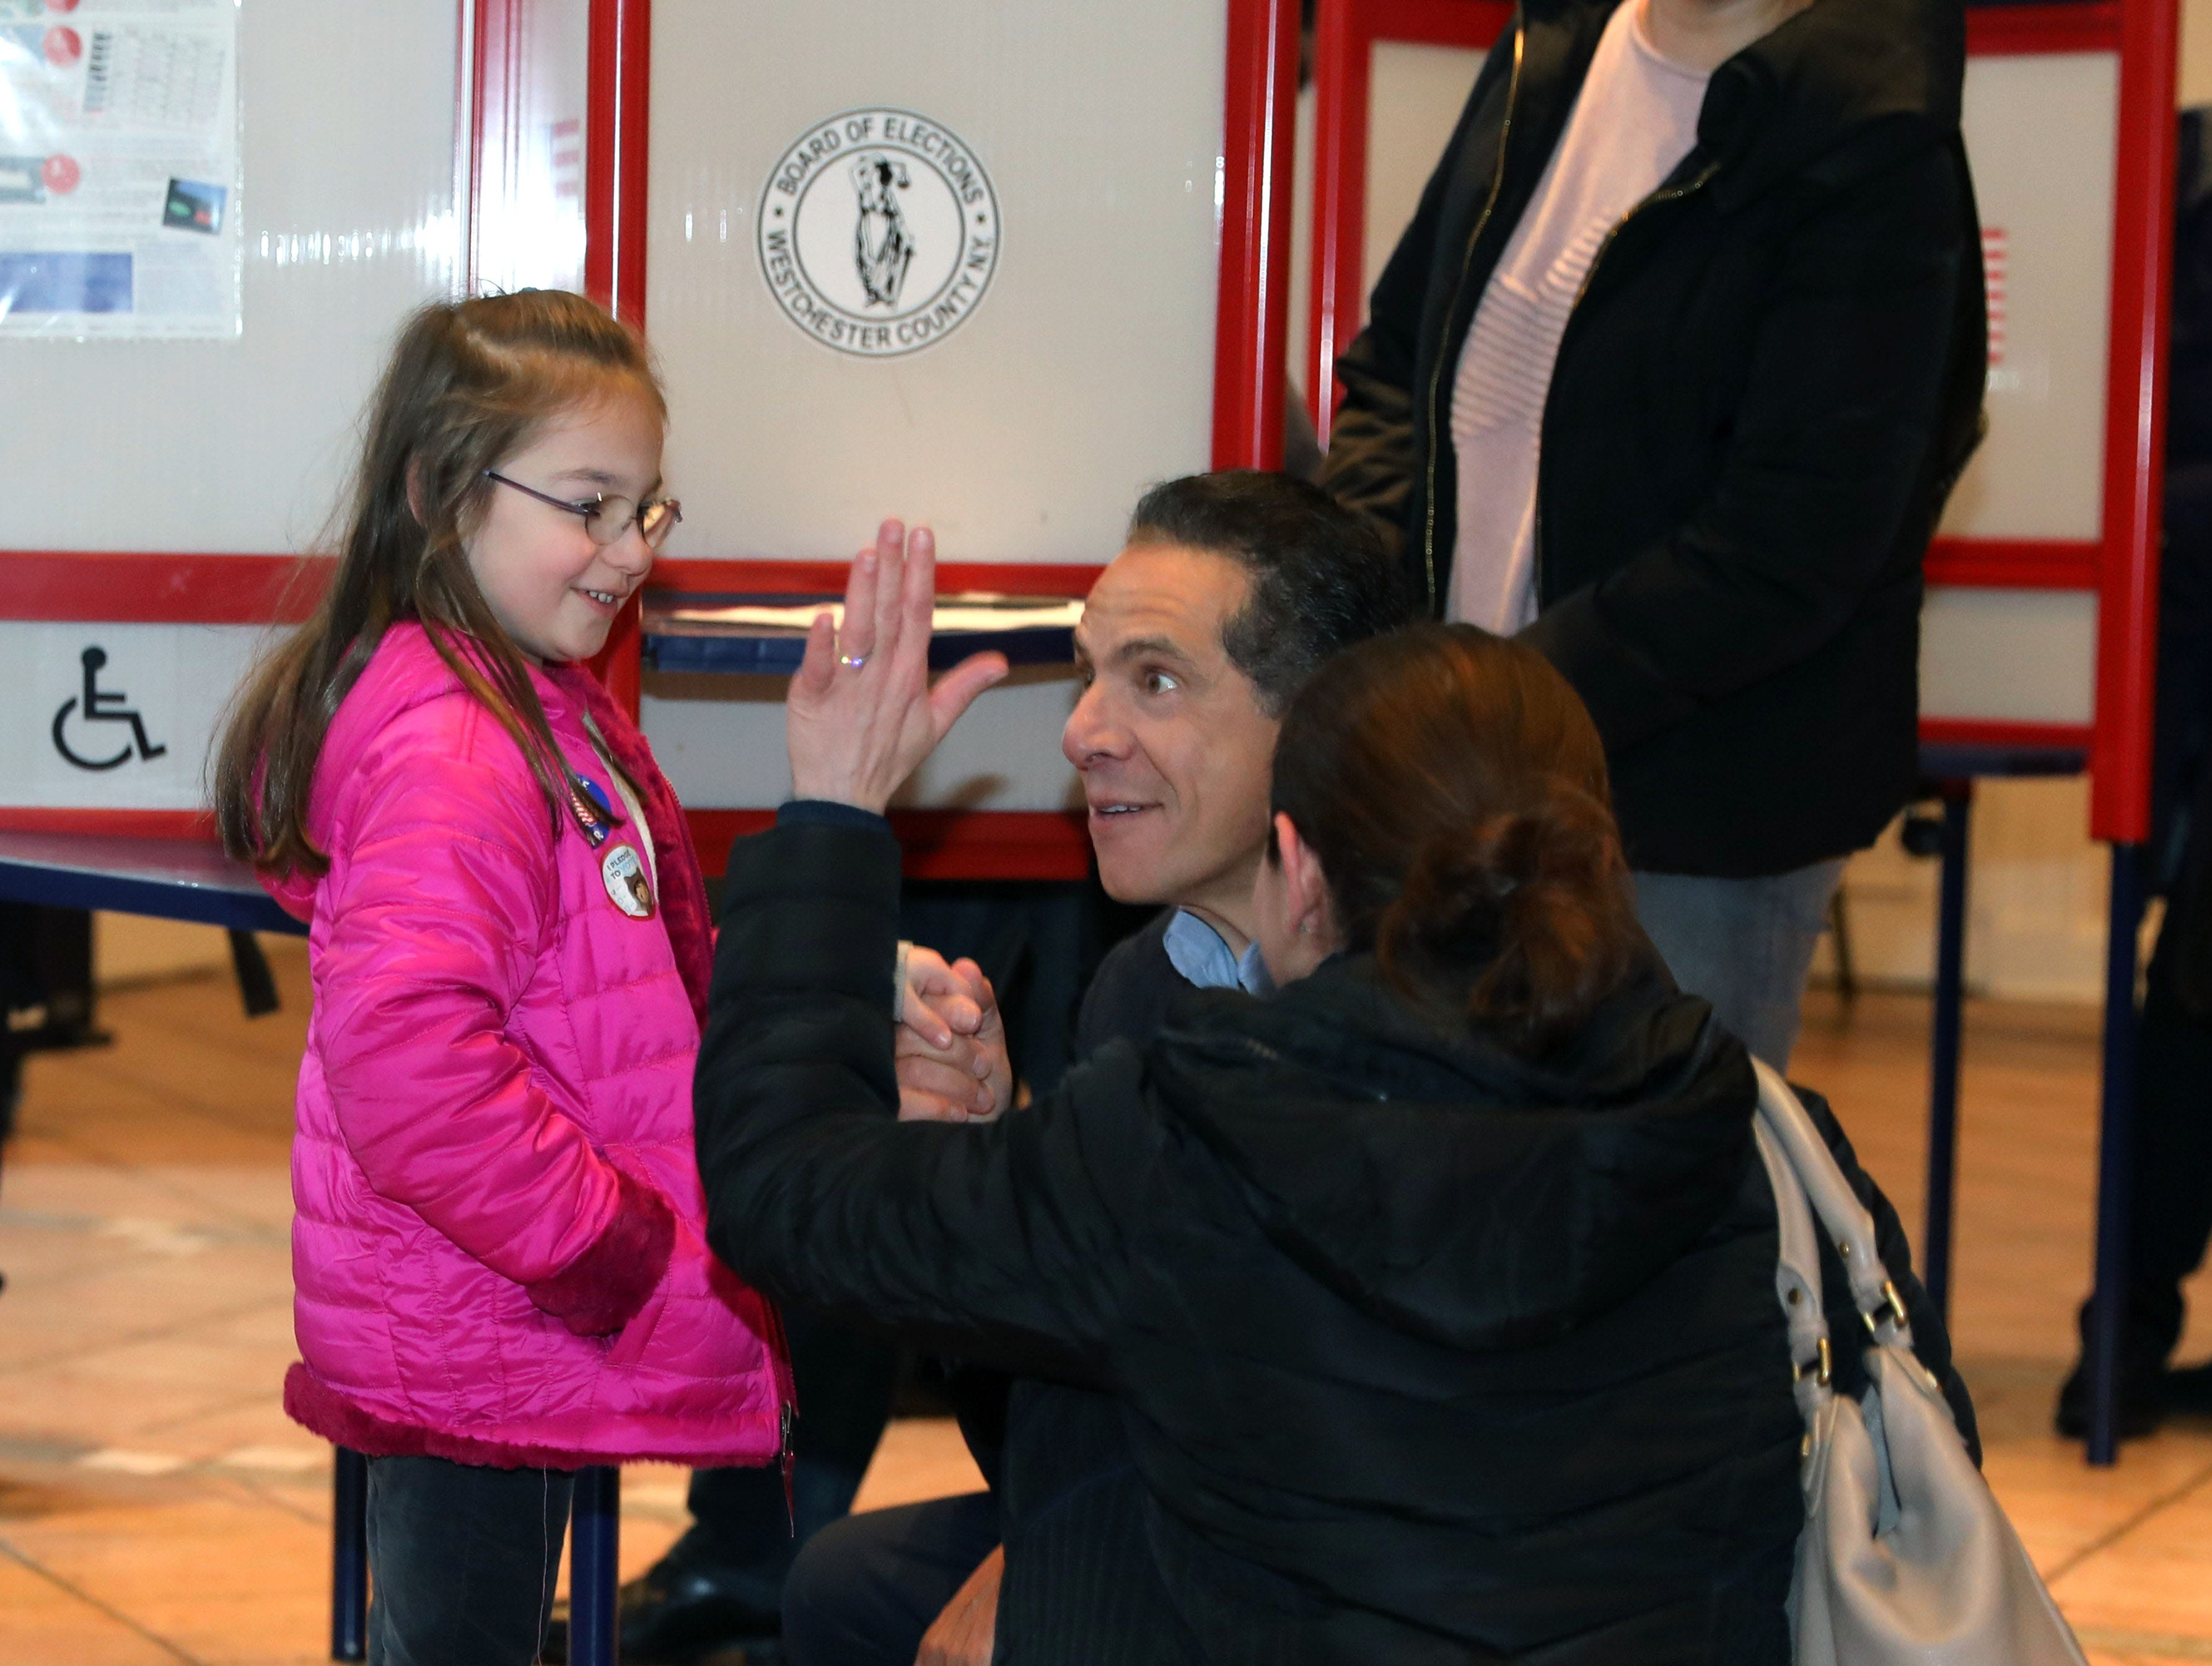 New York Governor Andrew Cuomo greets a youngster as he prepares to vote at the Presbyterian Church of Mount Kisco, Nov. 6, 2018.